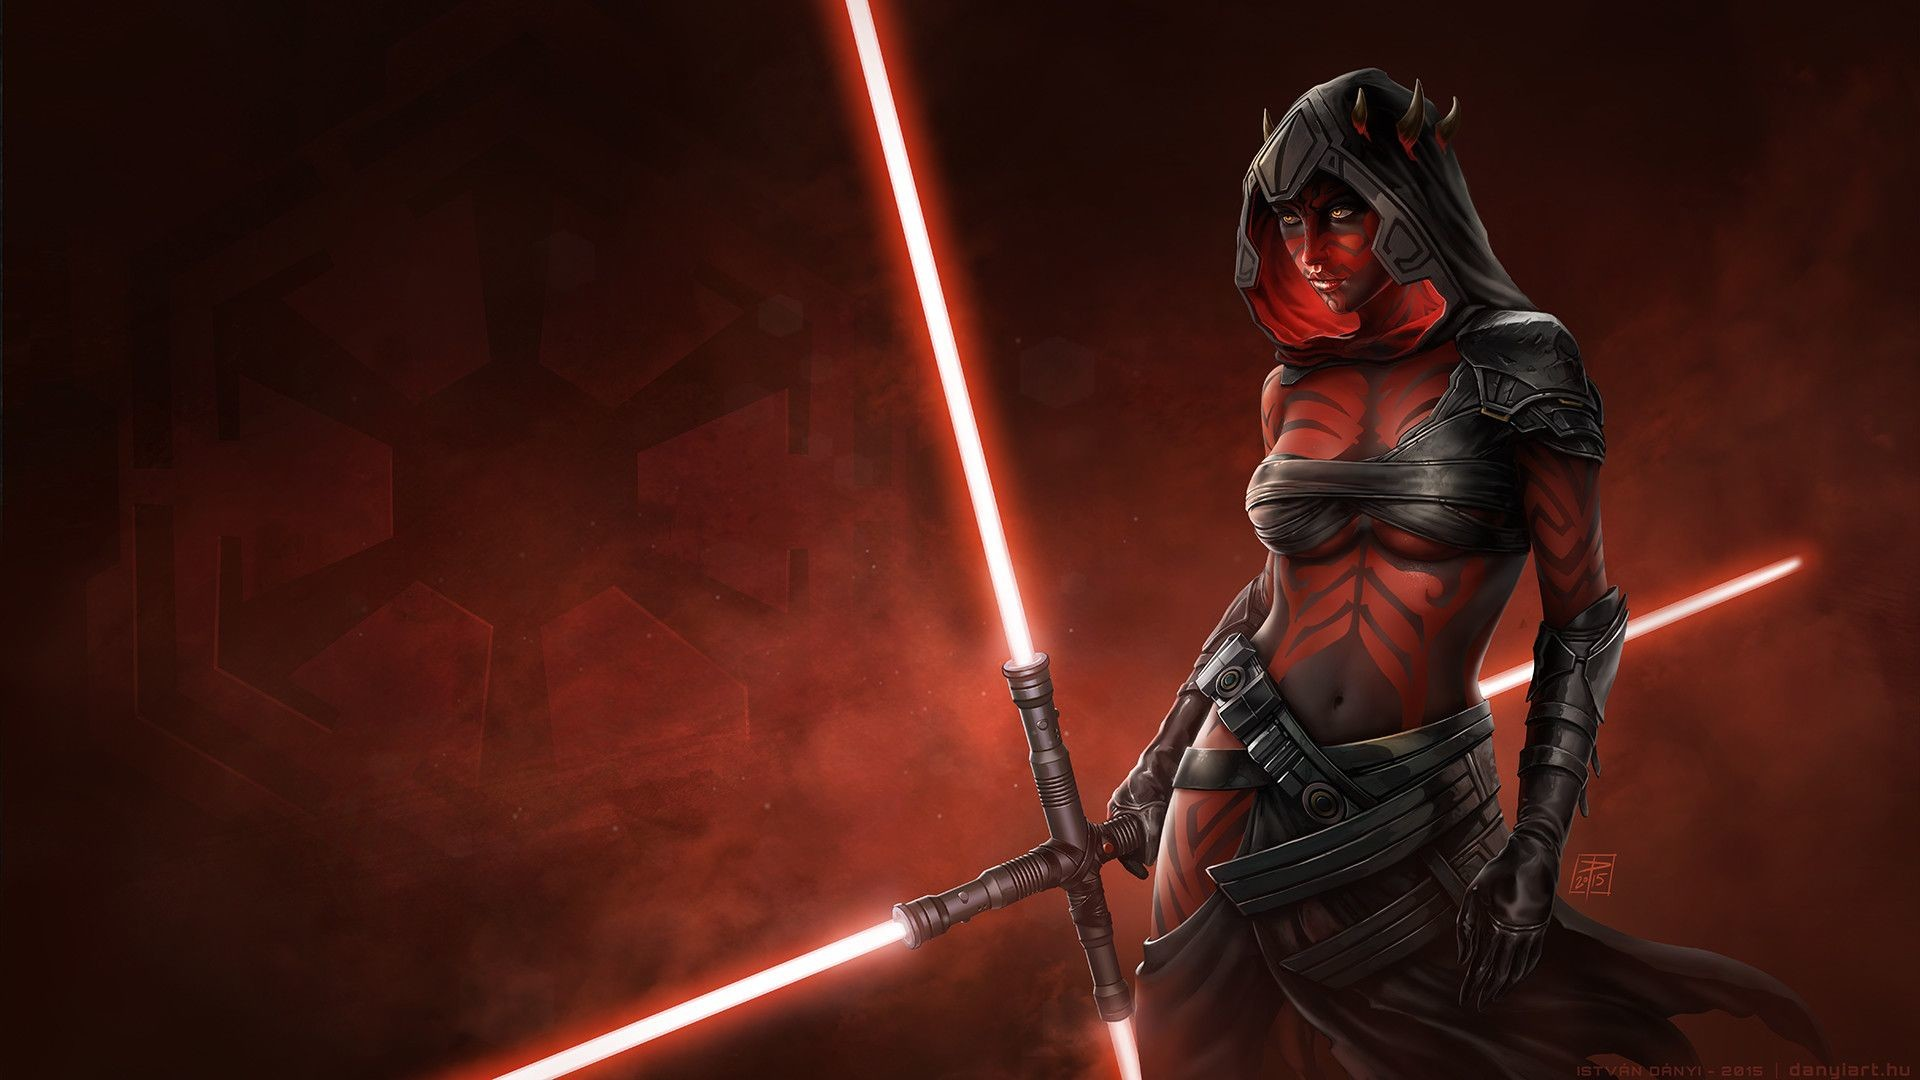 Sith Lord Wallpaper 71 Images